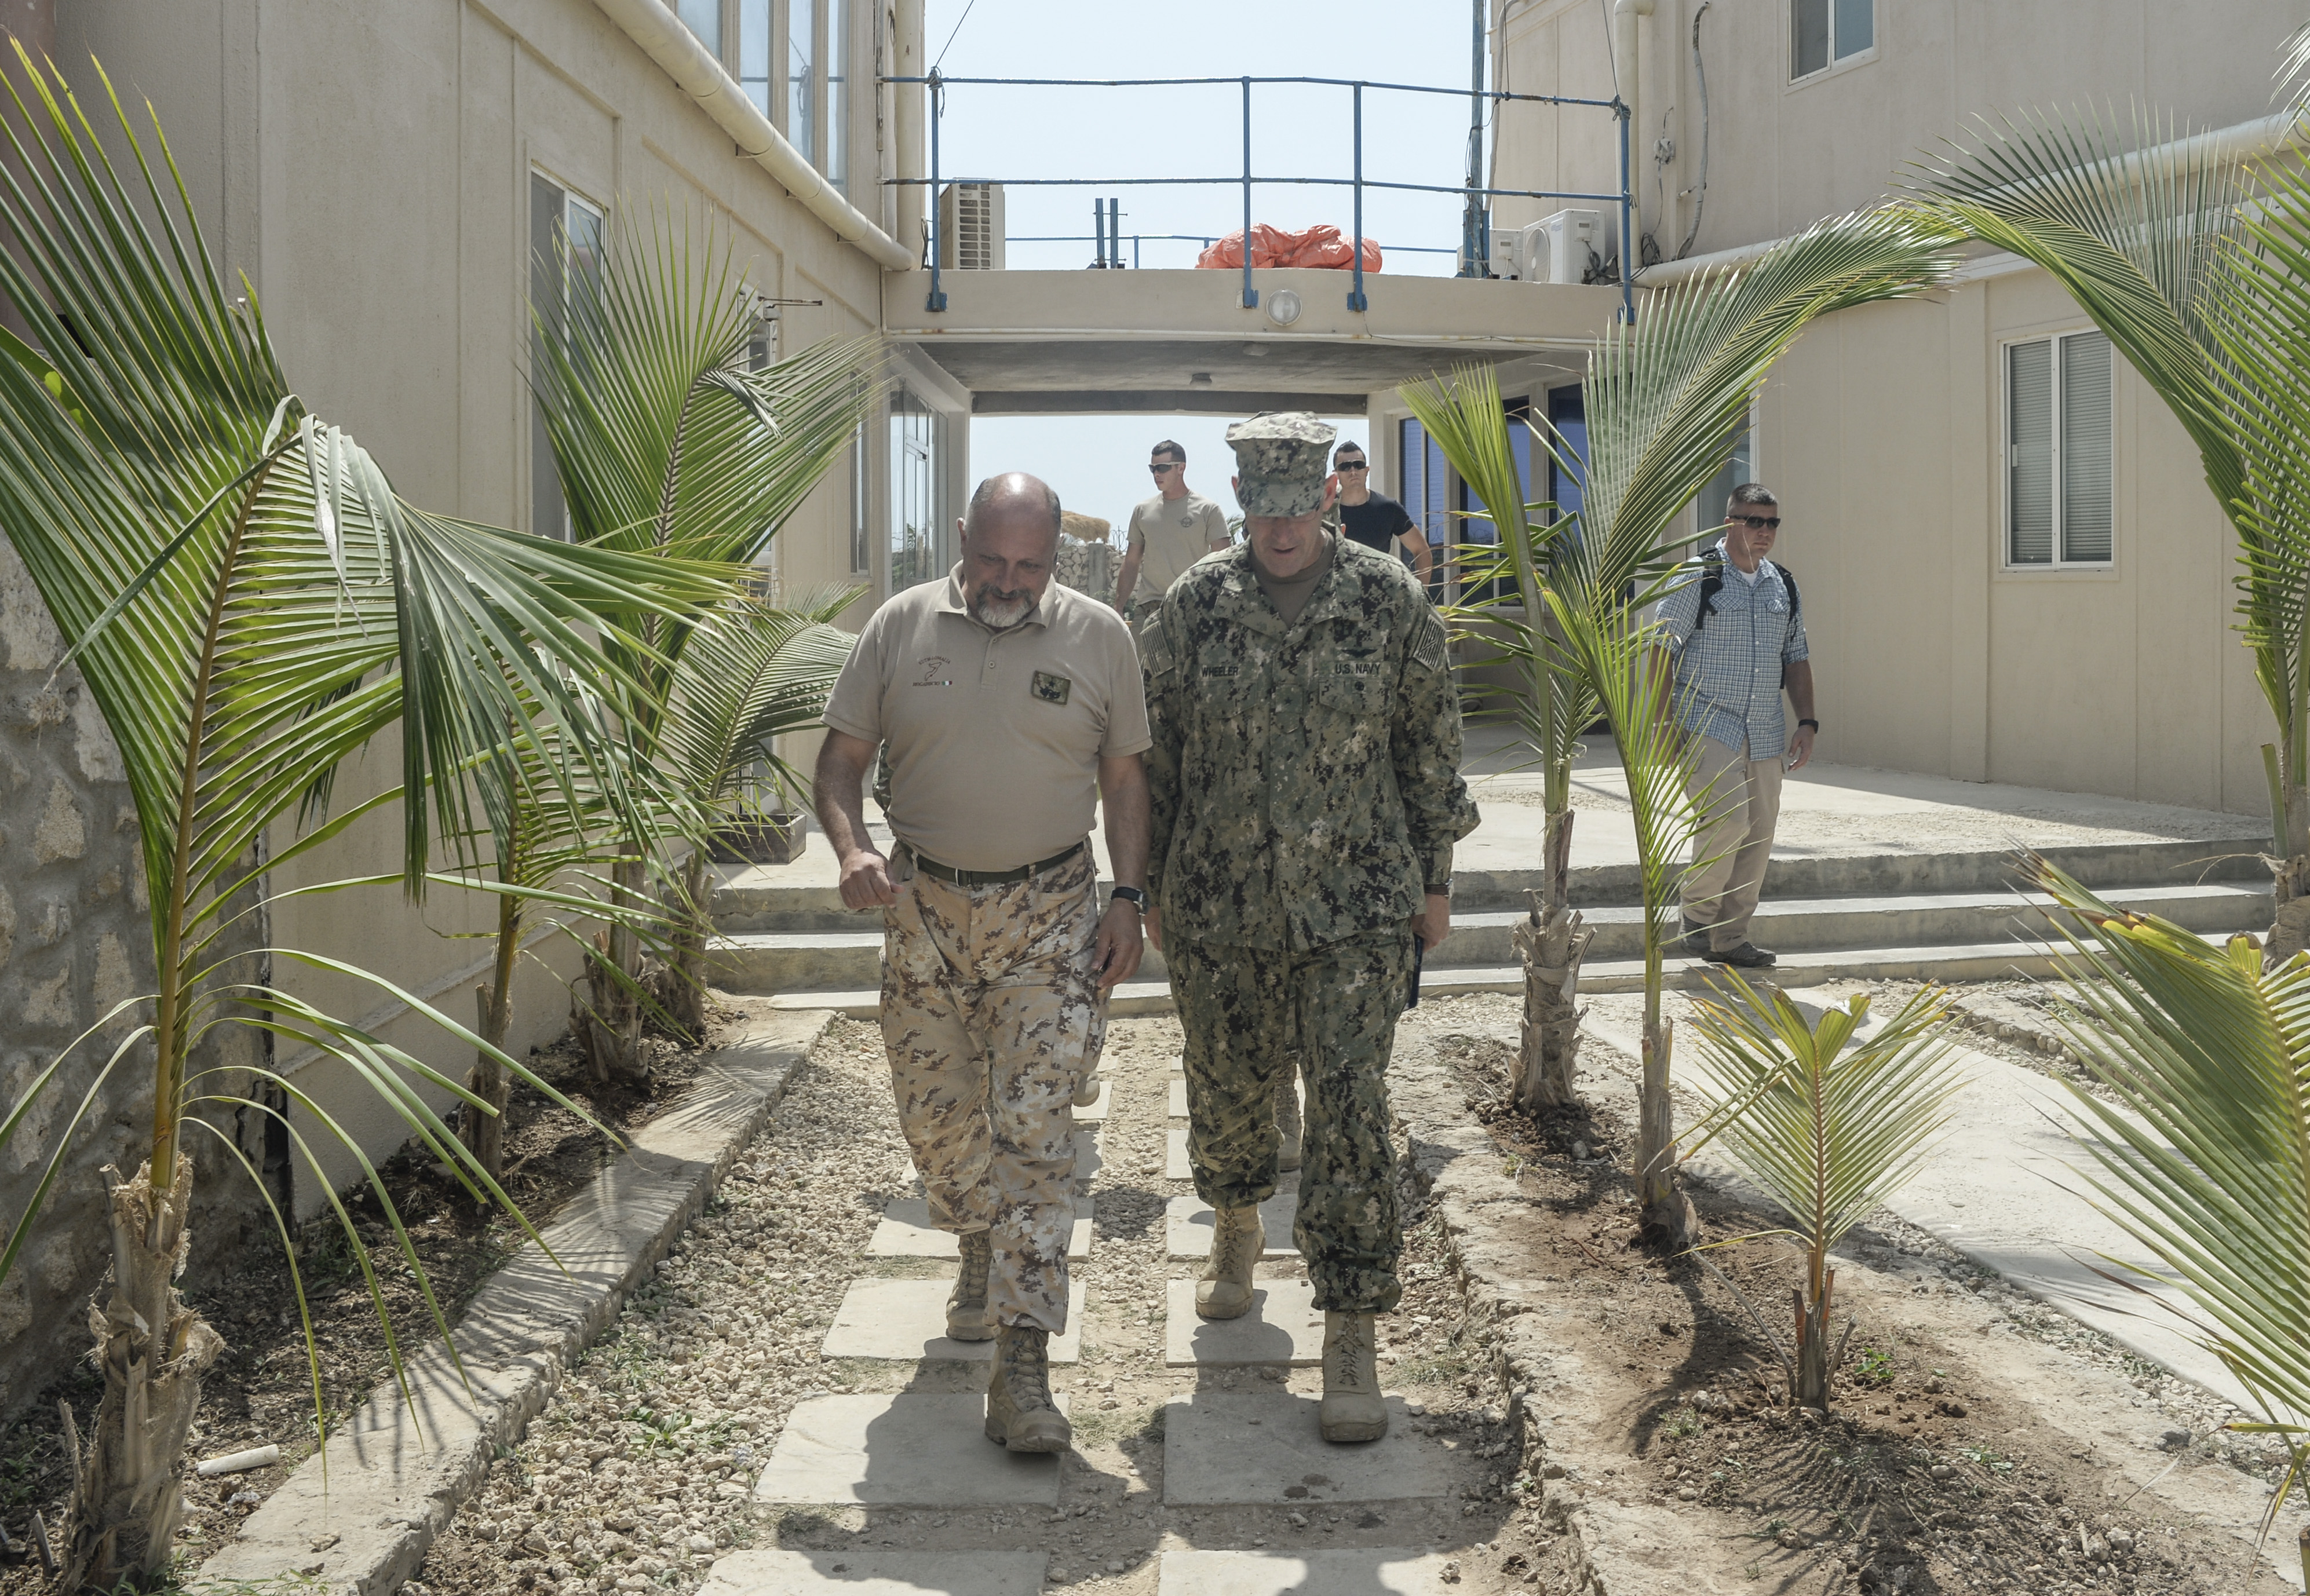 MOGADISHU, SOMALIA- Italian Army Brig. Gen. Maurizio Morena, European Union Training Mission Somalia commander, discusses the current status of Somalia with U.S. Navy Rear Adm. William Wheeler III, Combined Joint Task Force-Horn of Africa (CJTF-HOA) deputy commander, in Mogadishu, Somalia Dec. 19, 2016.  These meetings help to coordinate CJTF-HOA, European Union, United Nations, African Union Mission in Somalia and other international partner's efforts to stabilize Somalia and the surrounding regions.